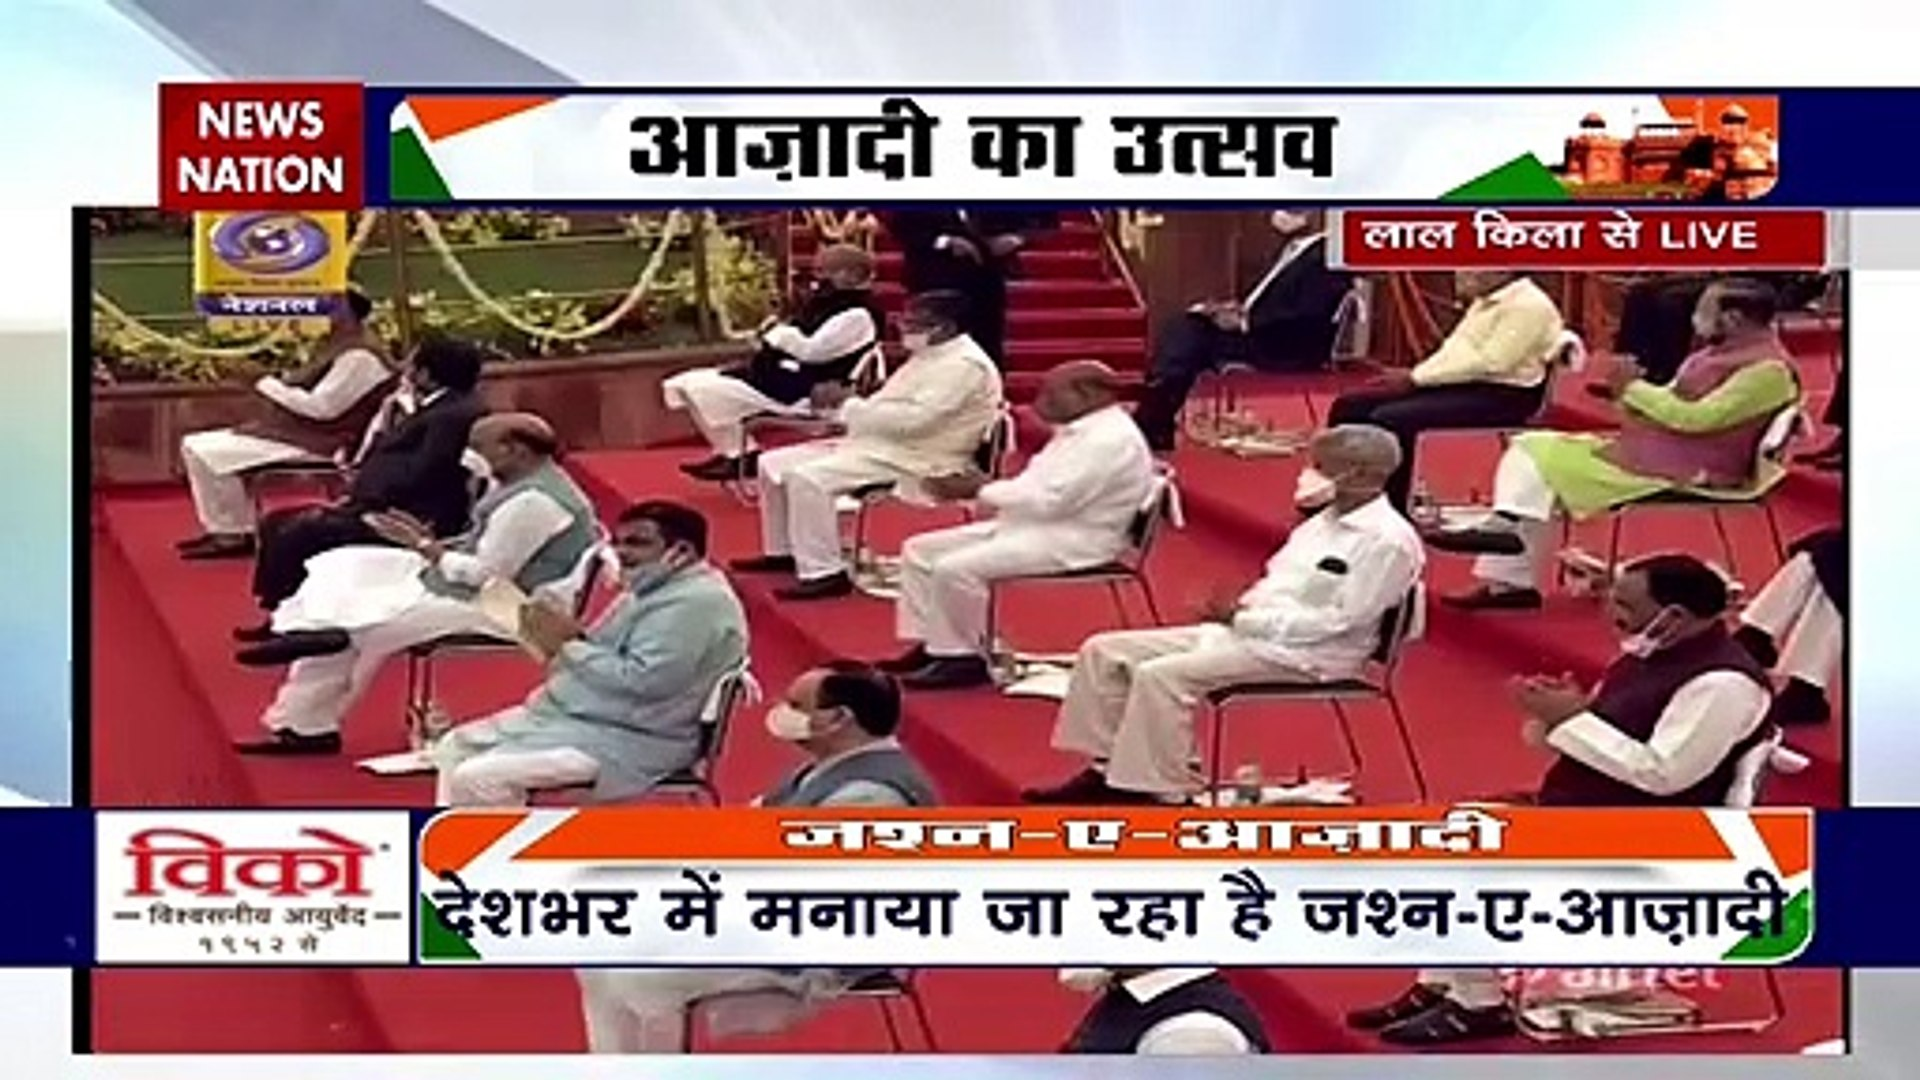 Live from Red fort: PM Modi addresses India on 74th independence Day